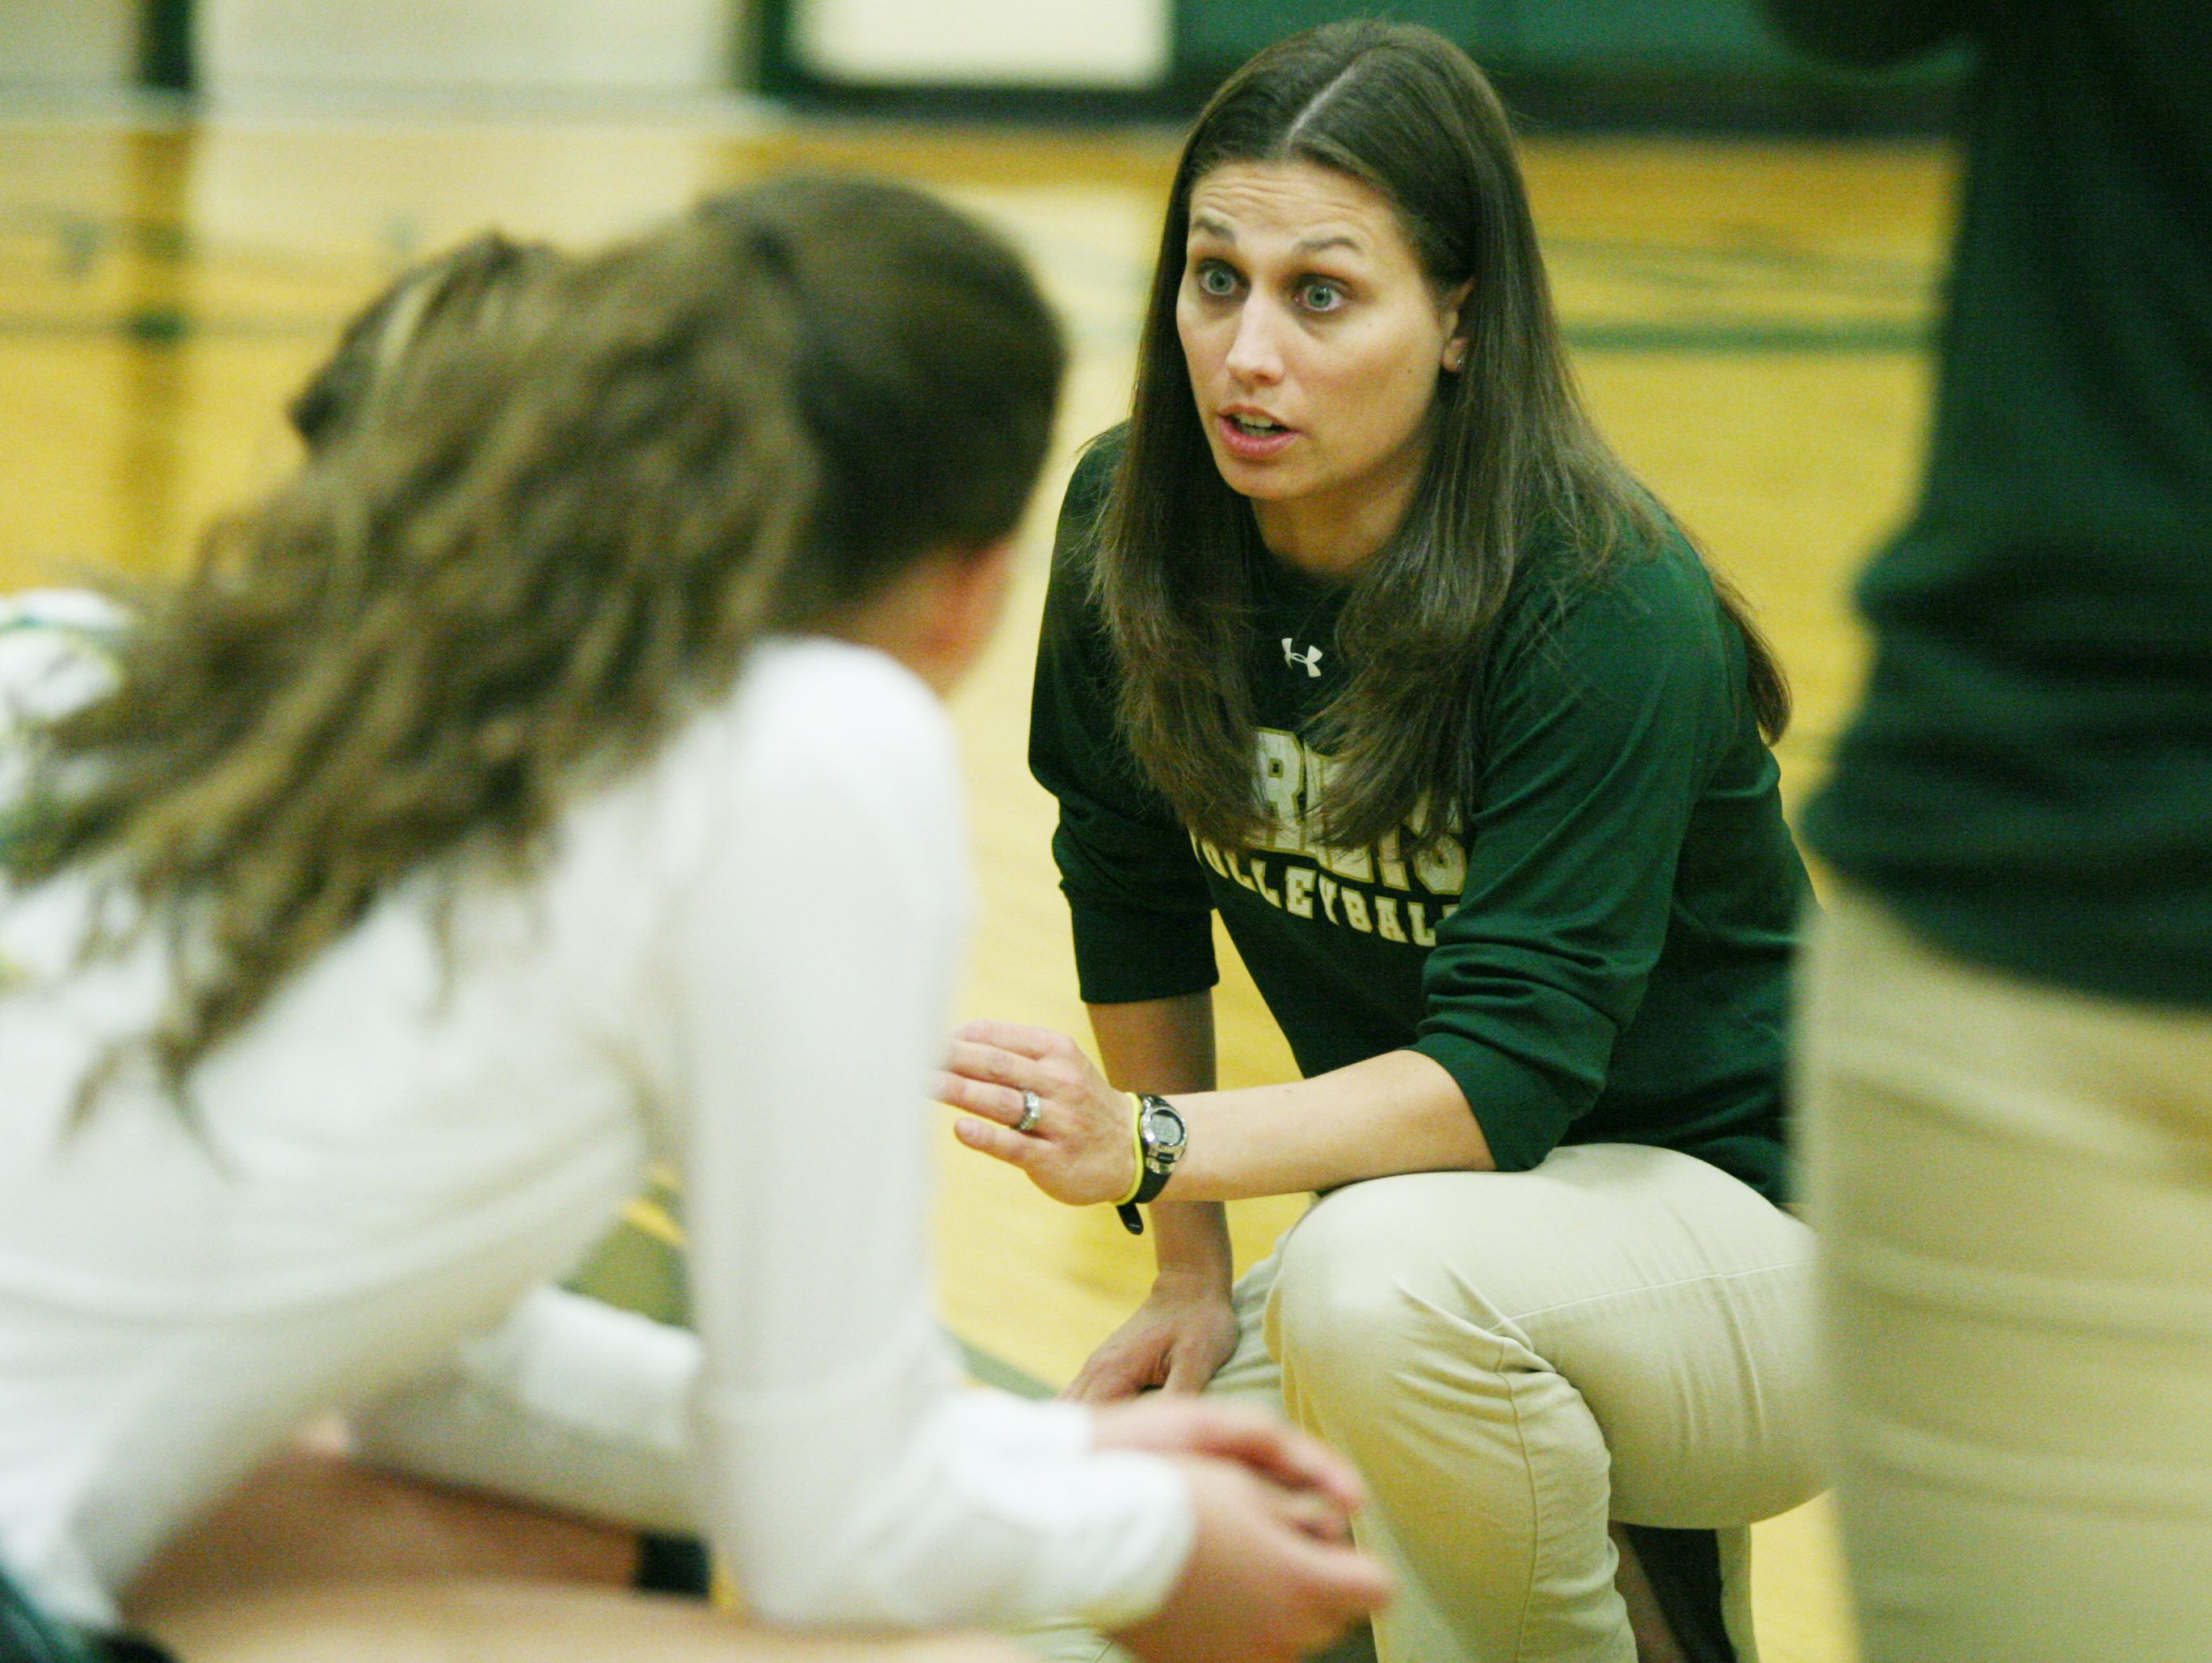 Wilson Memorial head coach Lauren Grove meets with the team during a time-out at the Conference 36 quarterfinal match against East Rockingham at Wilson Memorial in Fishersville on Tuesday, Nov. 1, 2016.